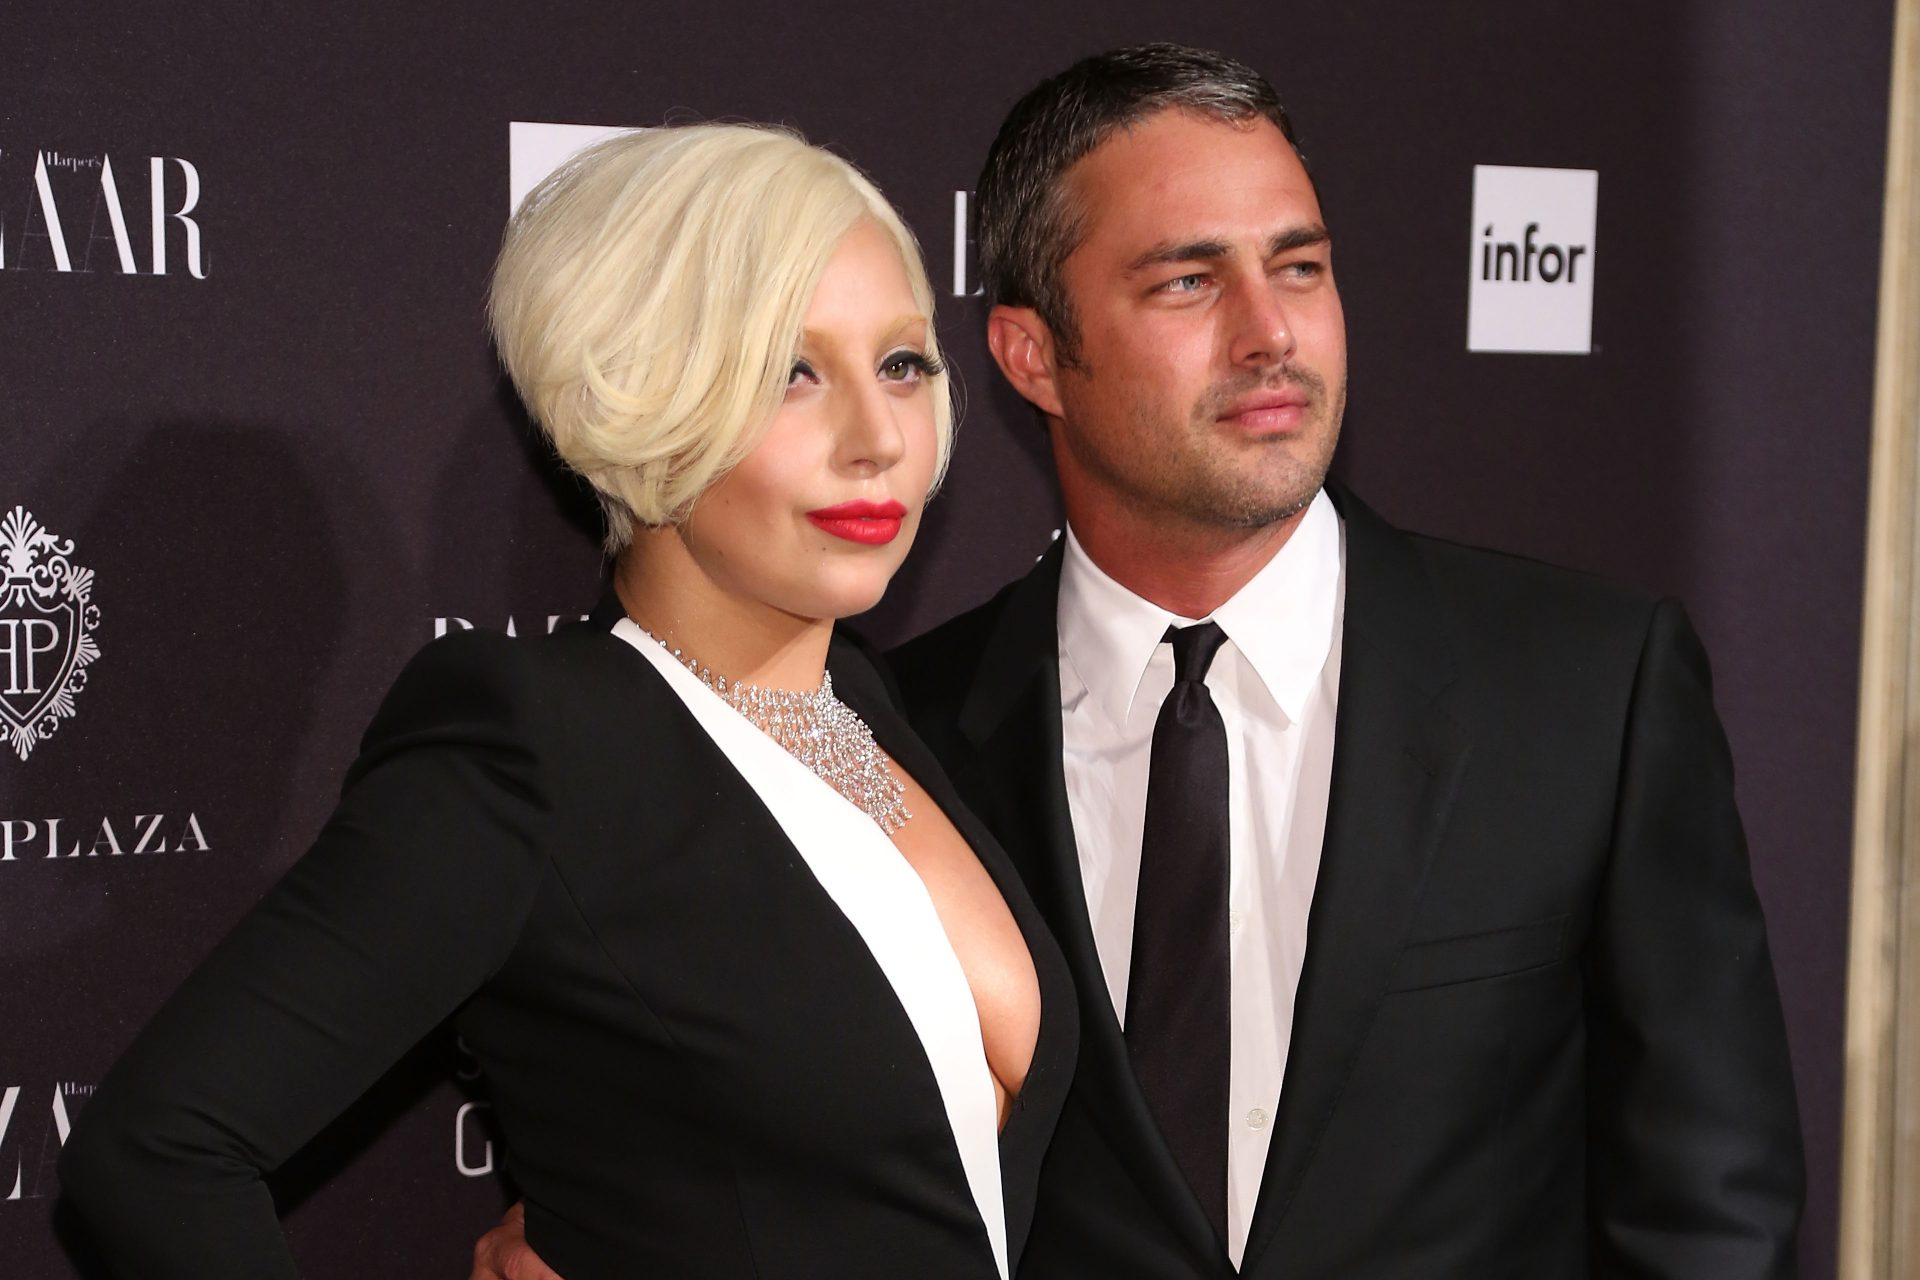 NEW YORK, NY - SEPTEMBER 05: Lady Gaga and Taylor Kinney attend Harper's Bazaar ICONS Celebration at The Plaza Hotel on September 5, 2014 in New York City. (Photo by Taylor Hill/FilmMagic)